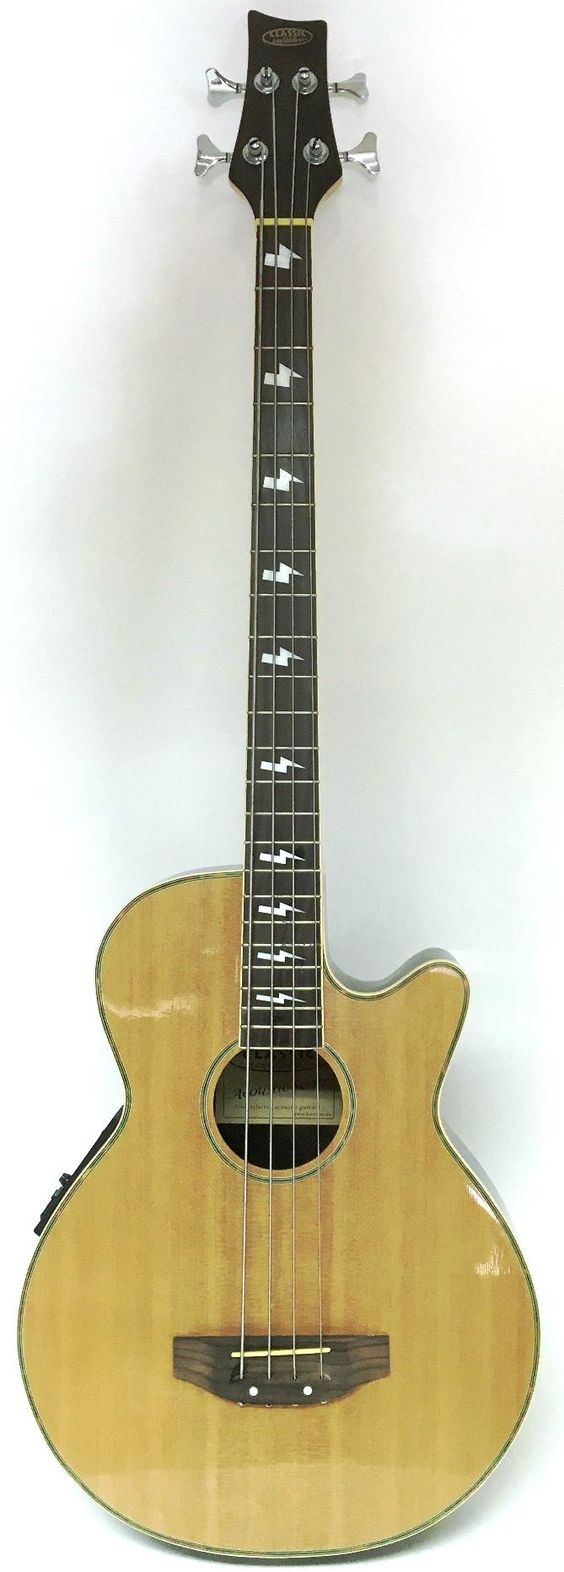 classic cantabile acoustic bass at Ukulele Corner